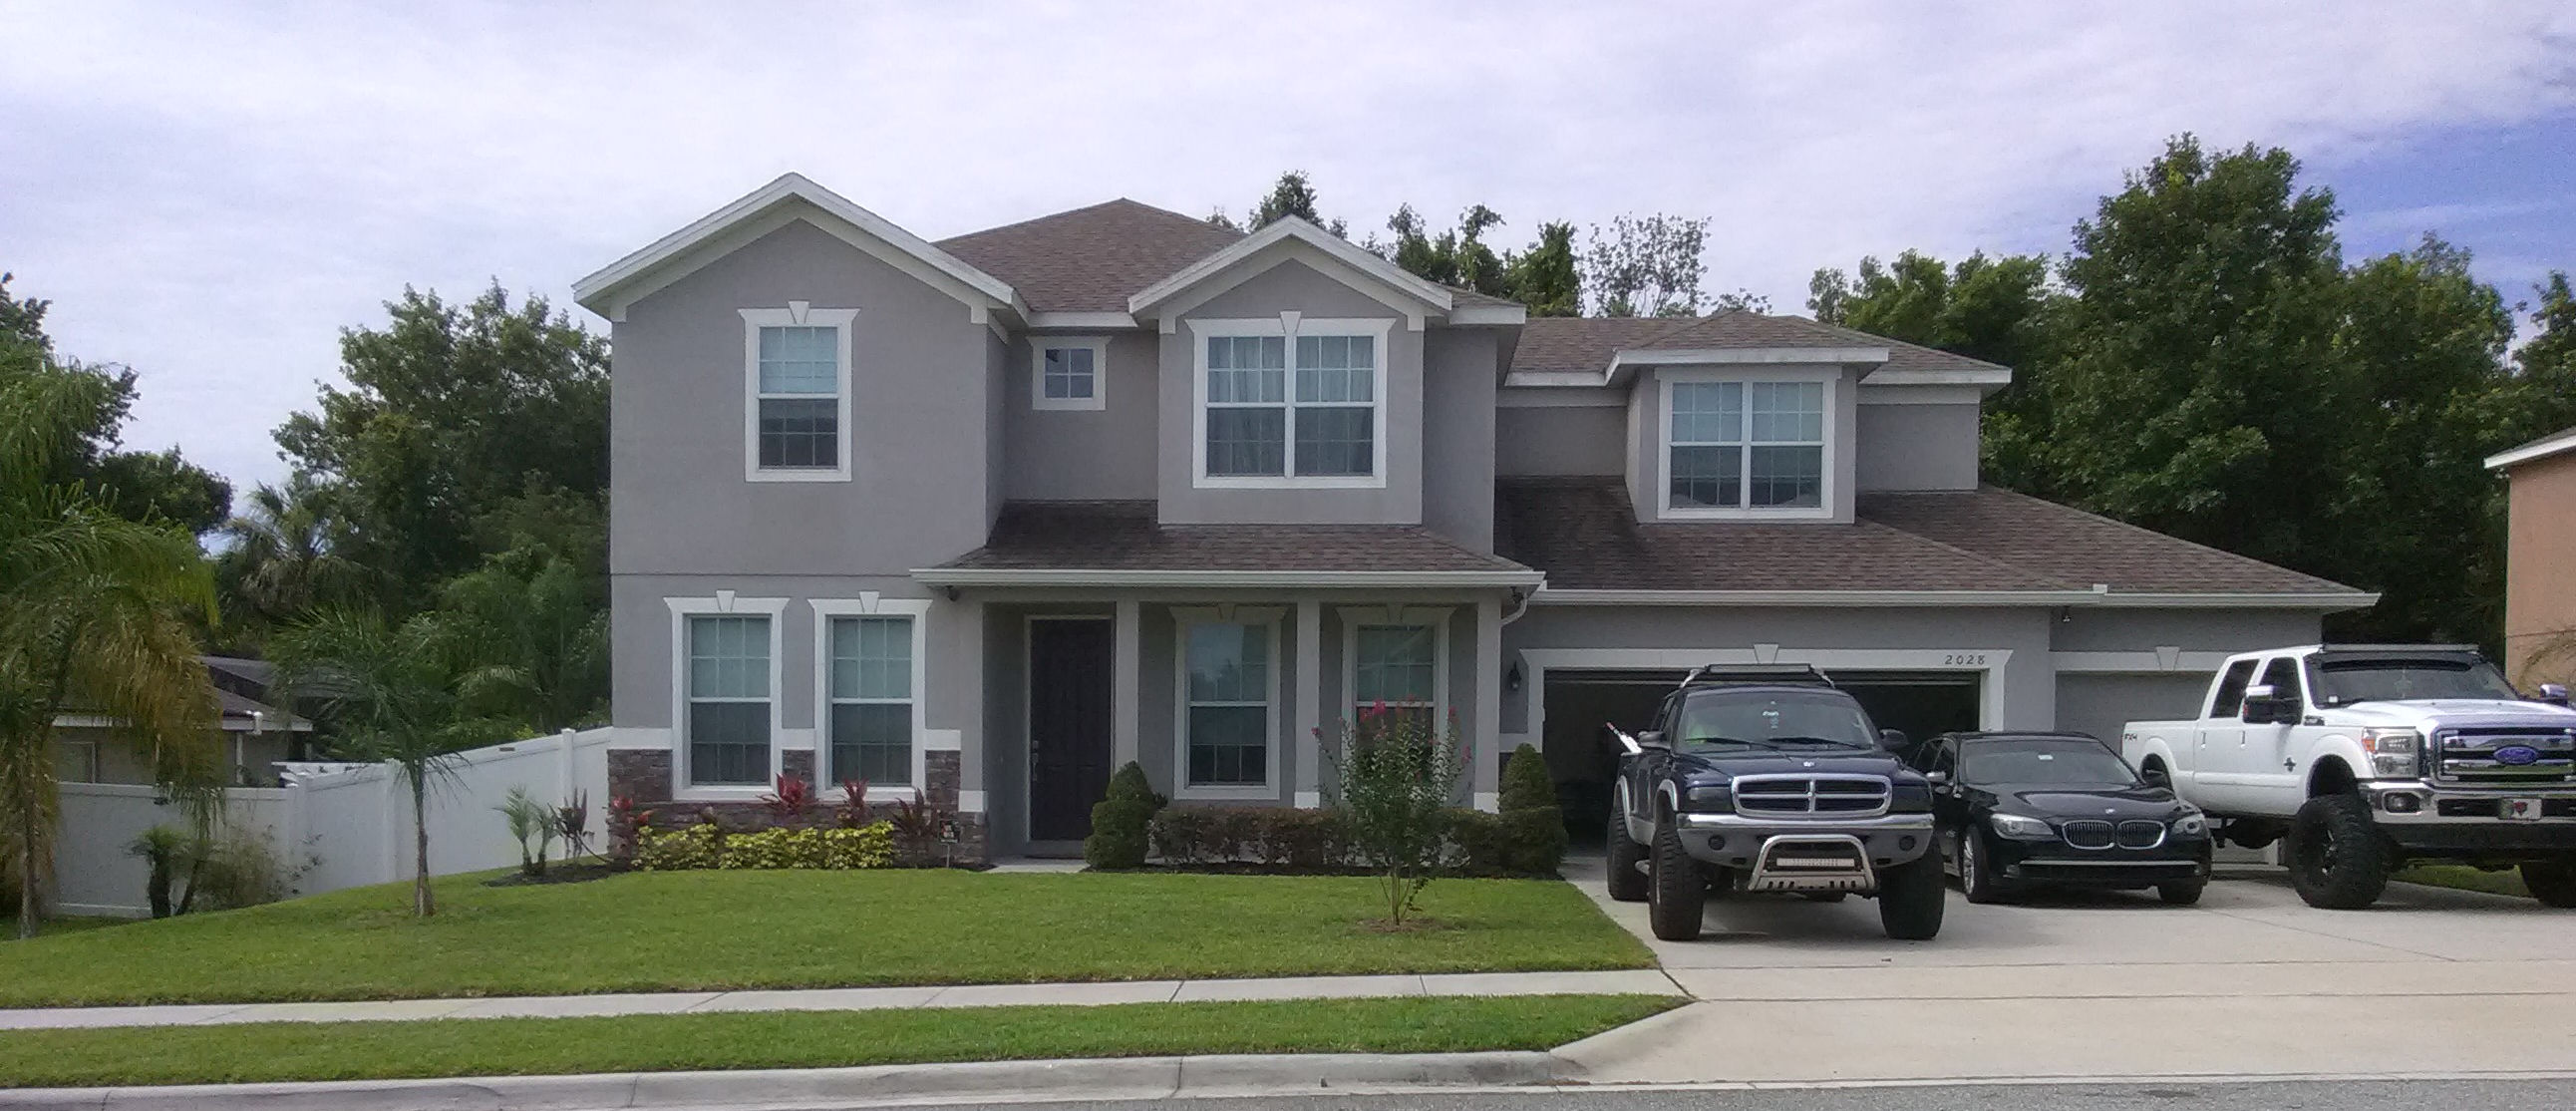 Lawn Mowing Contractor in Cocoa, FL, 32926